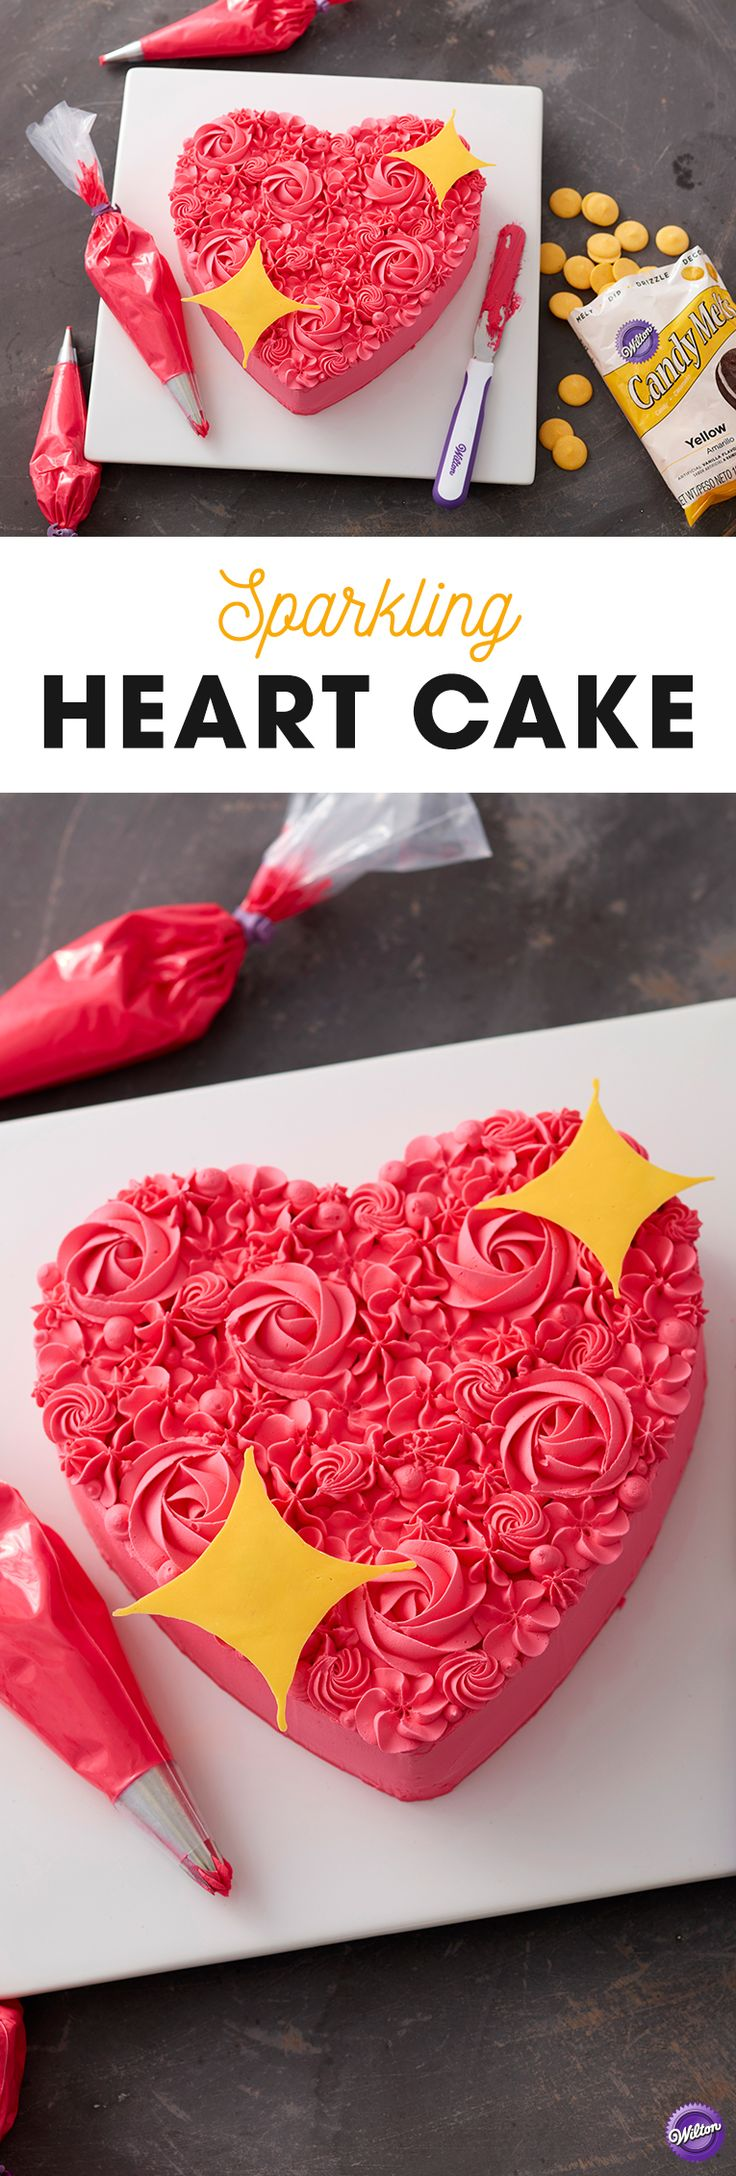 Topped with candy stars and featuring a variety of decorating techniques, the Sparkling Heart Cake is a dream for beginning decorators. A simple heart cake is covered with amazing rosettes, stars, drop flowers and more for a textured and stunning treat that is great for weddings, Valentine's Day or bridal showers. Use melted Candy Melts candy to create lovely star embellishments and have fun showing off this lovely blooming heart cake!